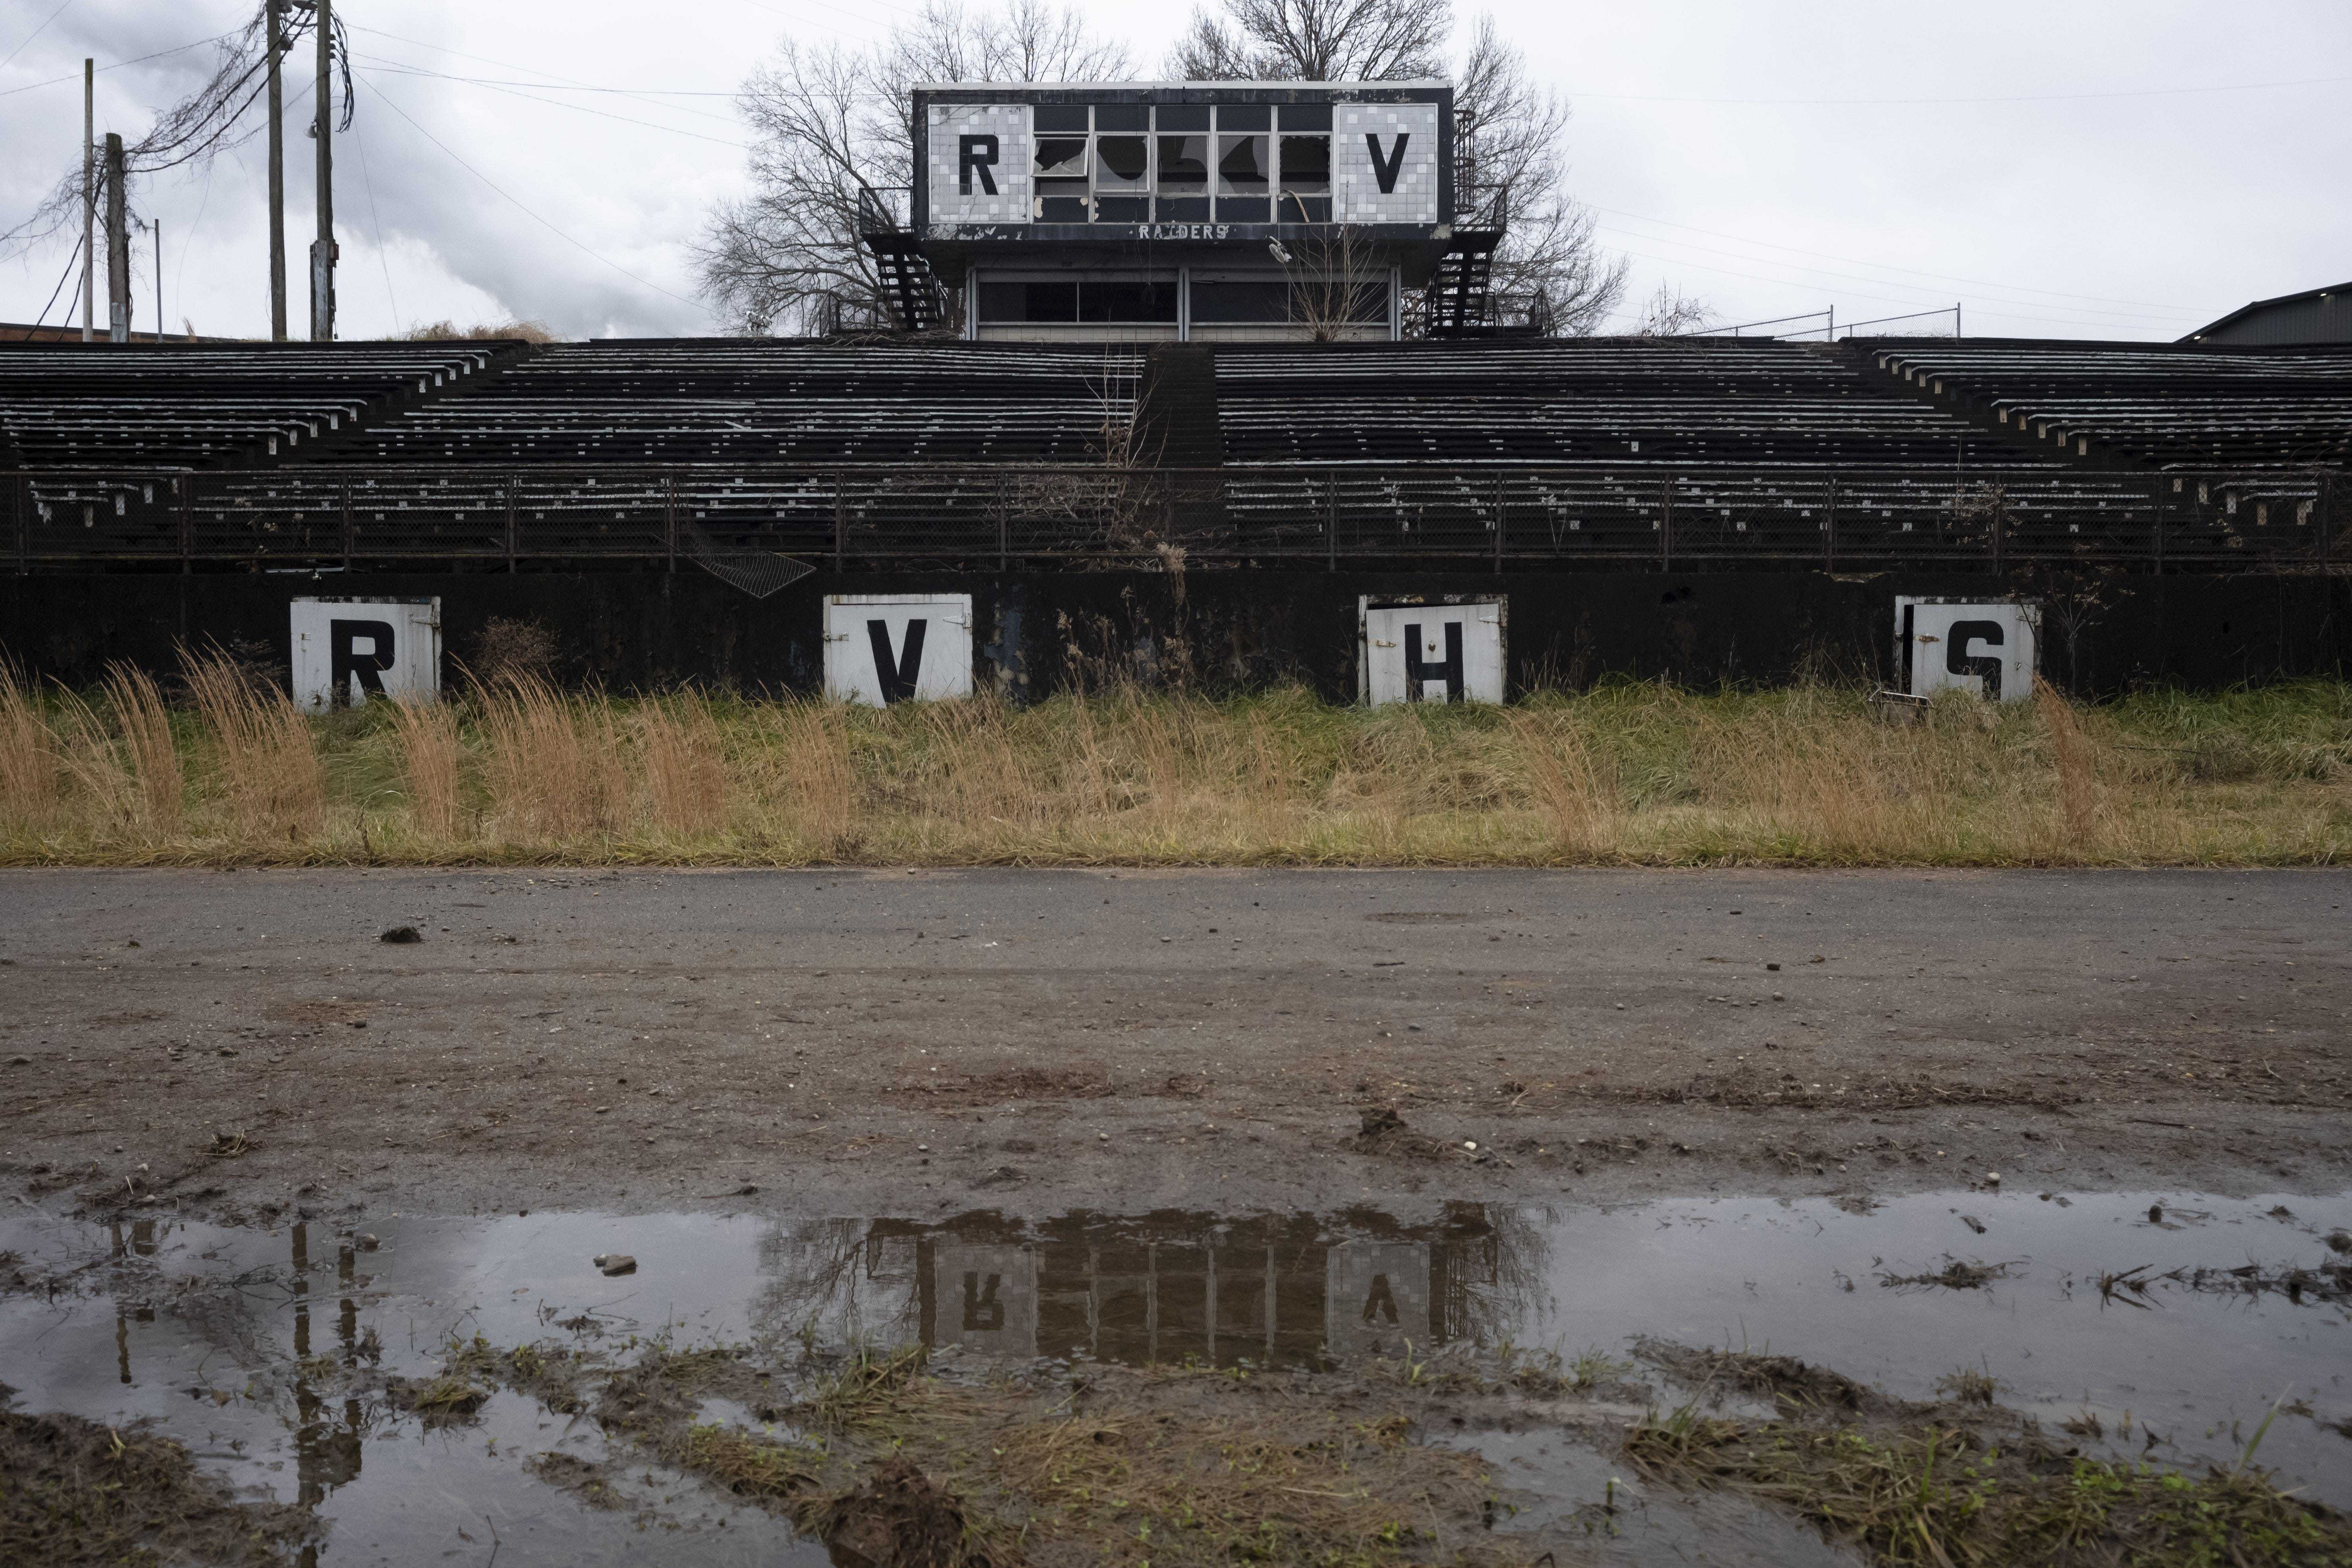 """The stadium stands of the former River Valley High School on Monday, Dec. 21, 2020 in Cheshire, Ohio, the site of a coal-burning power plant. Before residents moved away having been paid by American Electric Power, during sporting events, """"all the other schools would just complain so much because of the smell of the air that they had to run in,"""" a former student said."""